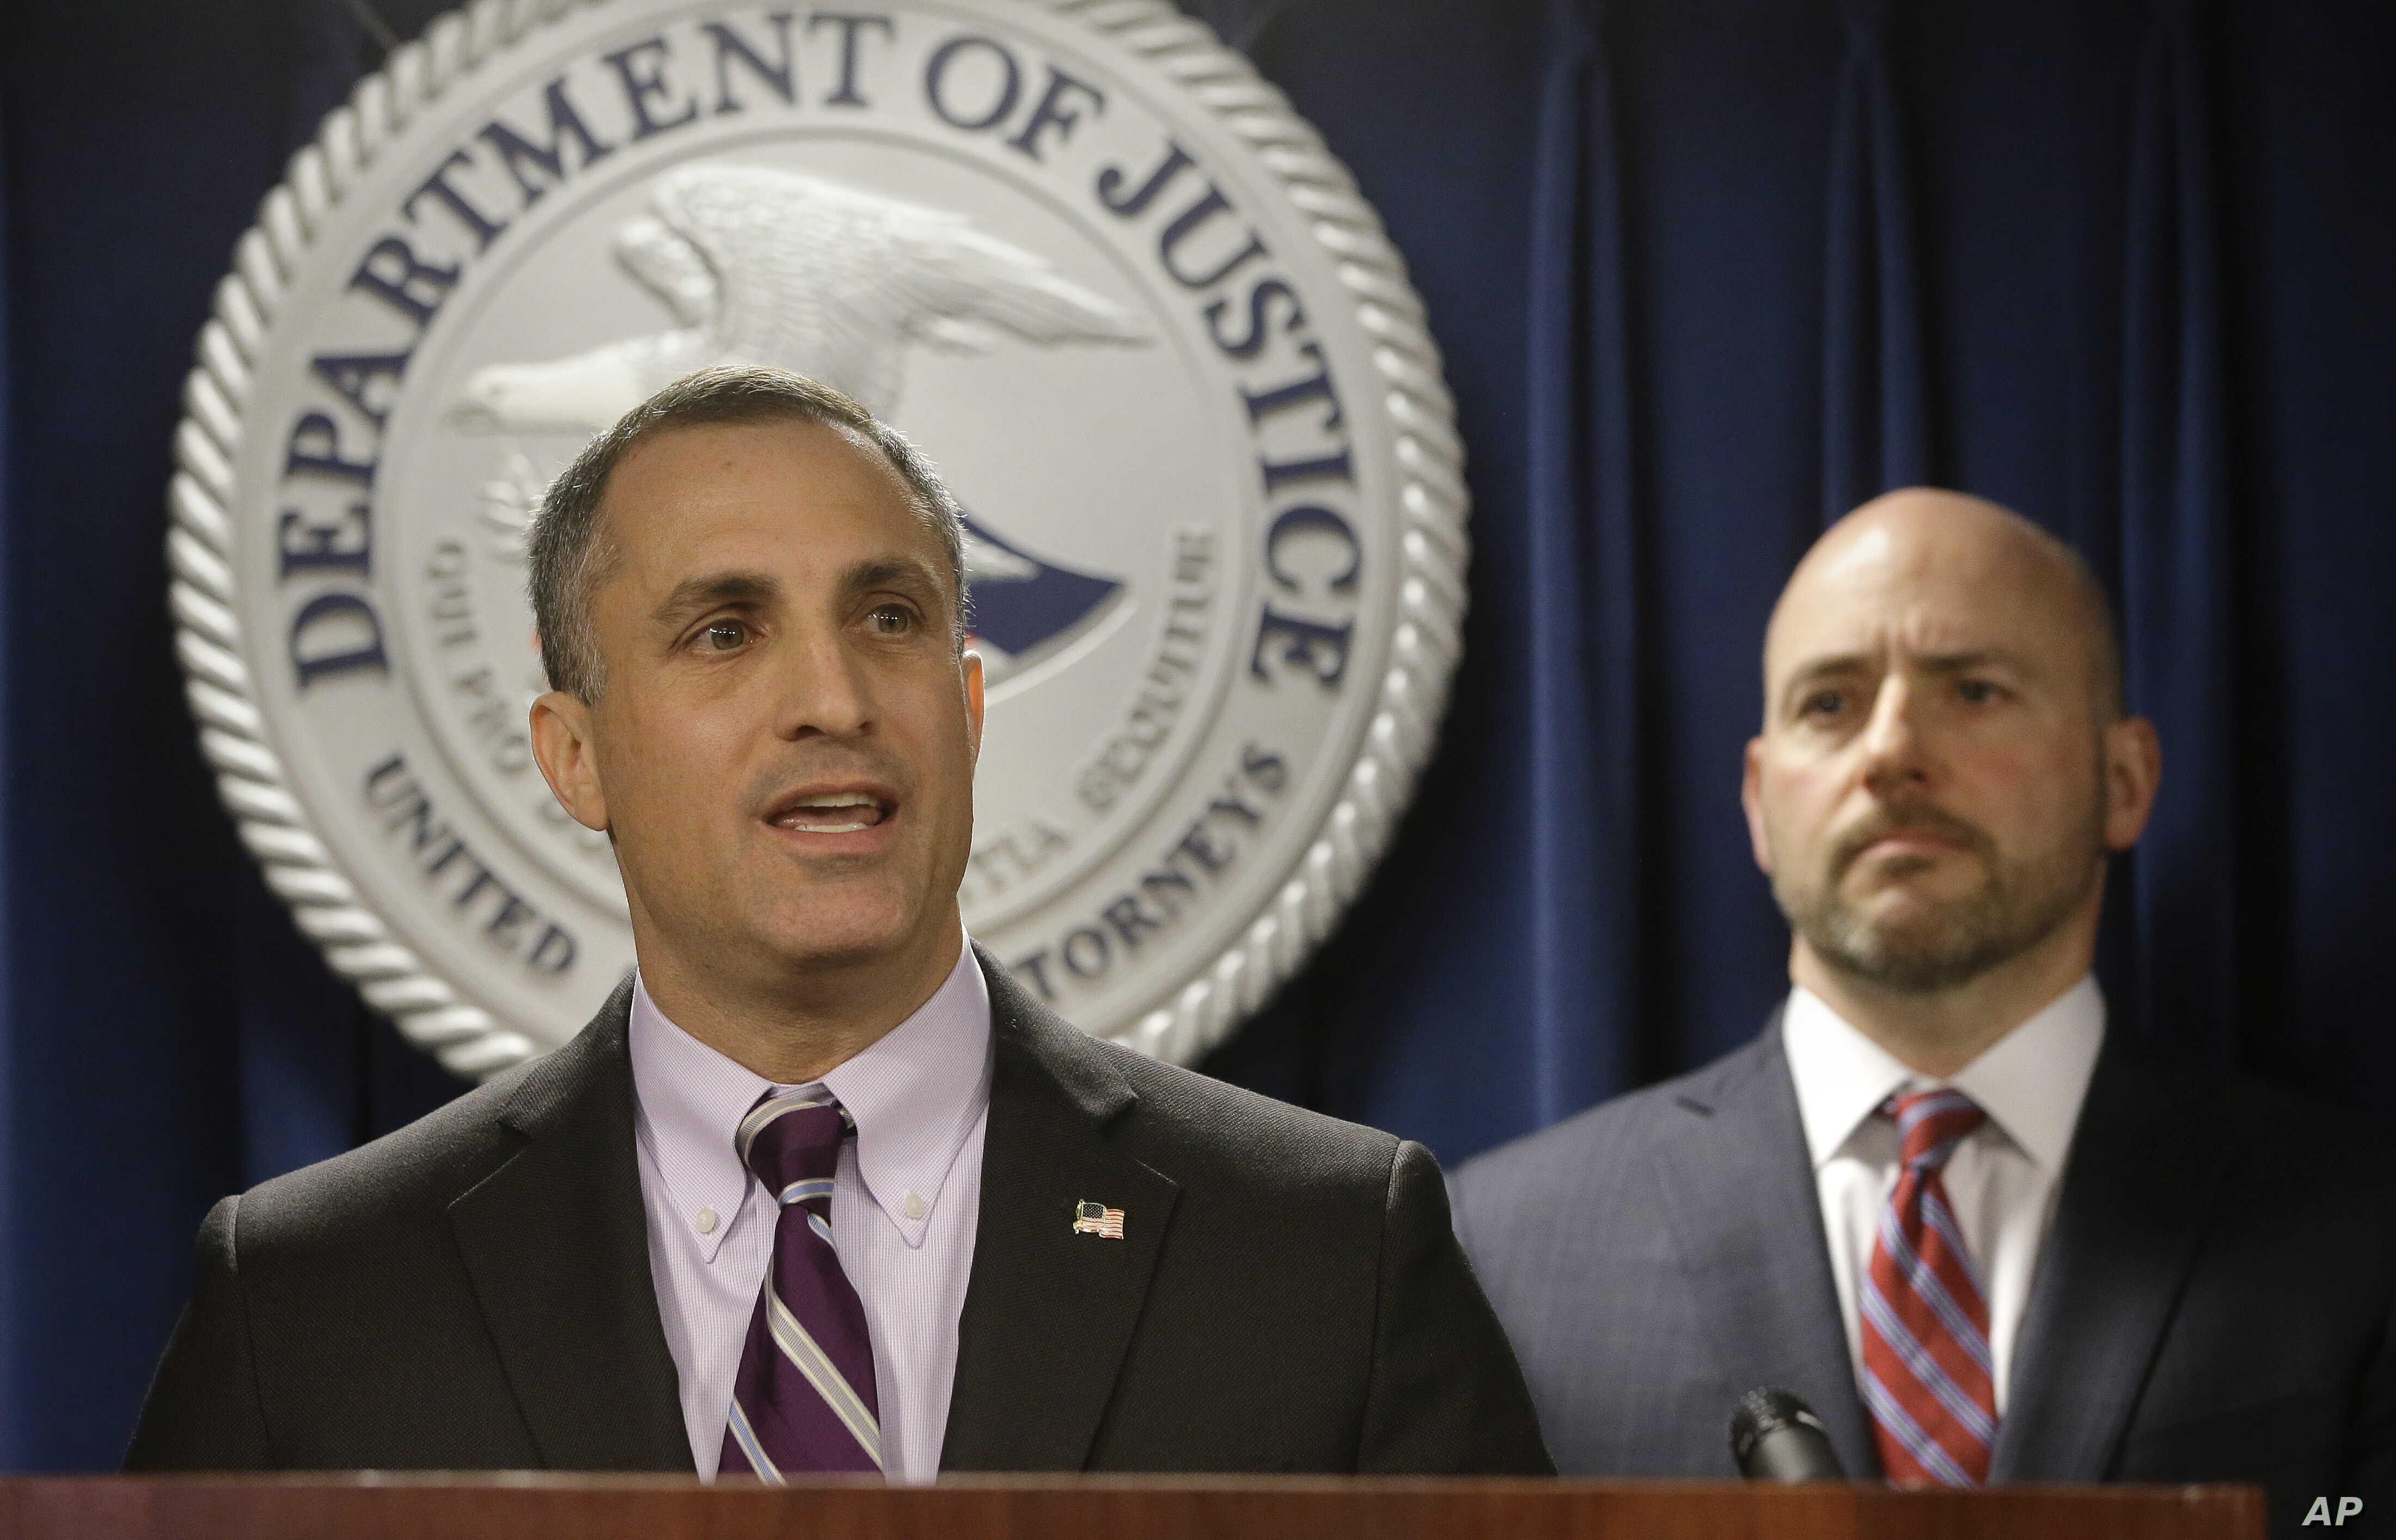 FBI Special Agent in Charge Boston Division Joseph Bonavolonta, left, and U.S. Attorney for District of Massachusetts Andrew Lelling, right, face reporters as they announce indictments in a sweeping college admissions bribery scandal during a news co...